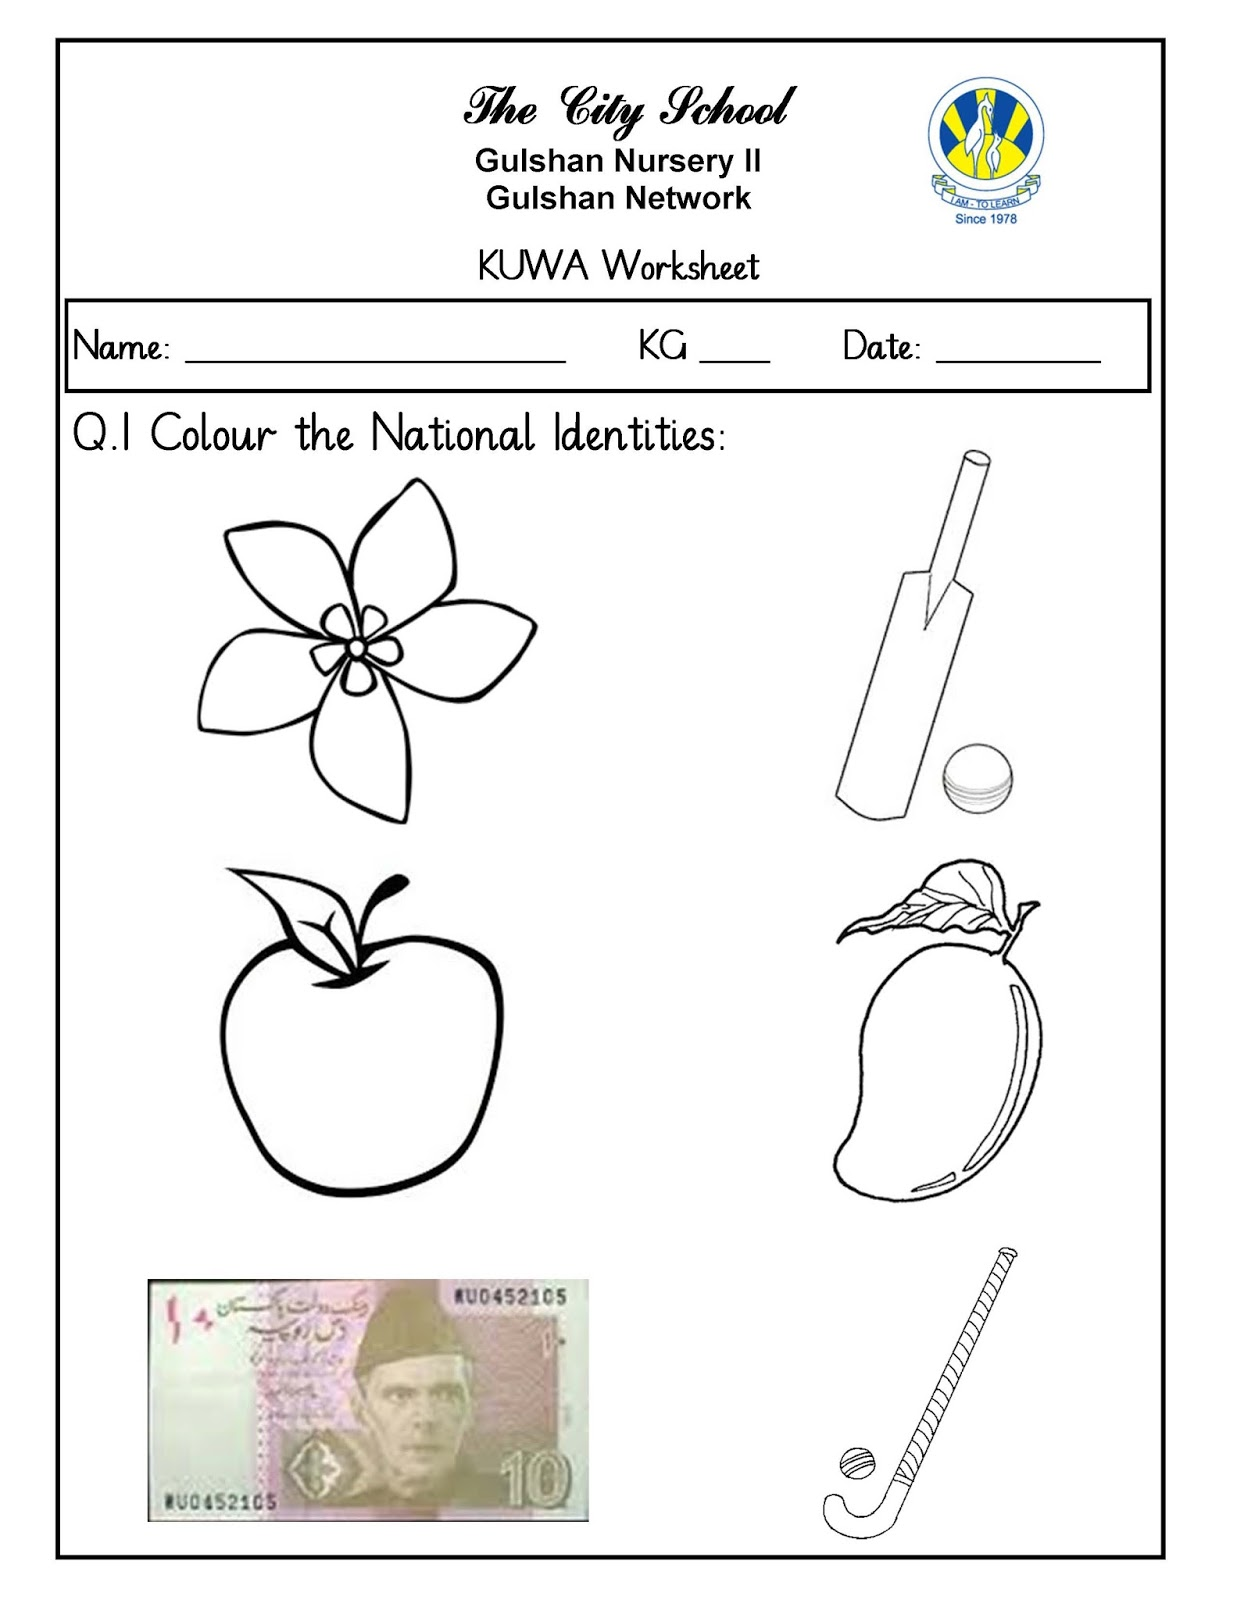 Sr Gulshan The City Nursery Ii Kuwa Worksheets